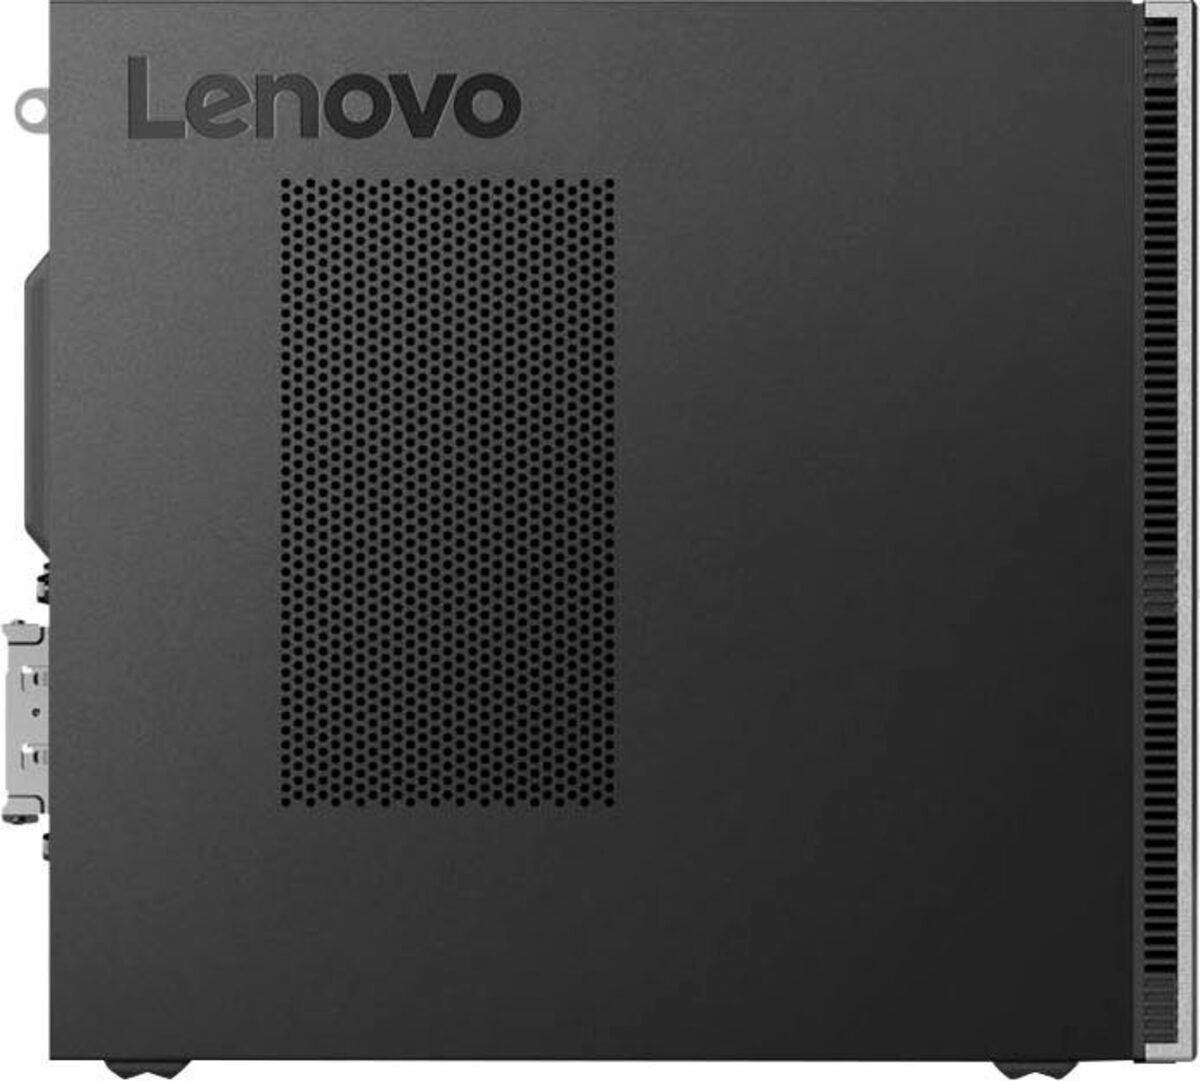 Bild 4 von Lenovo ideacentre 510s-07ICK PC (Intel® Pentium Gold, UHD Graphics 610, 8 GB RAM, 256 GB SSD, inkl. Office-Anwendersoftware Microsoft 365 Single im Wert von 69 Euro)